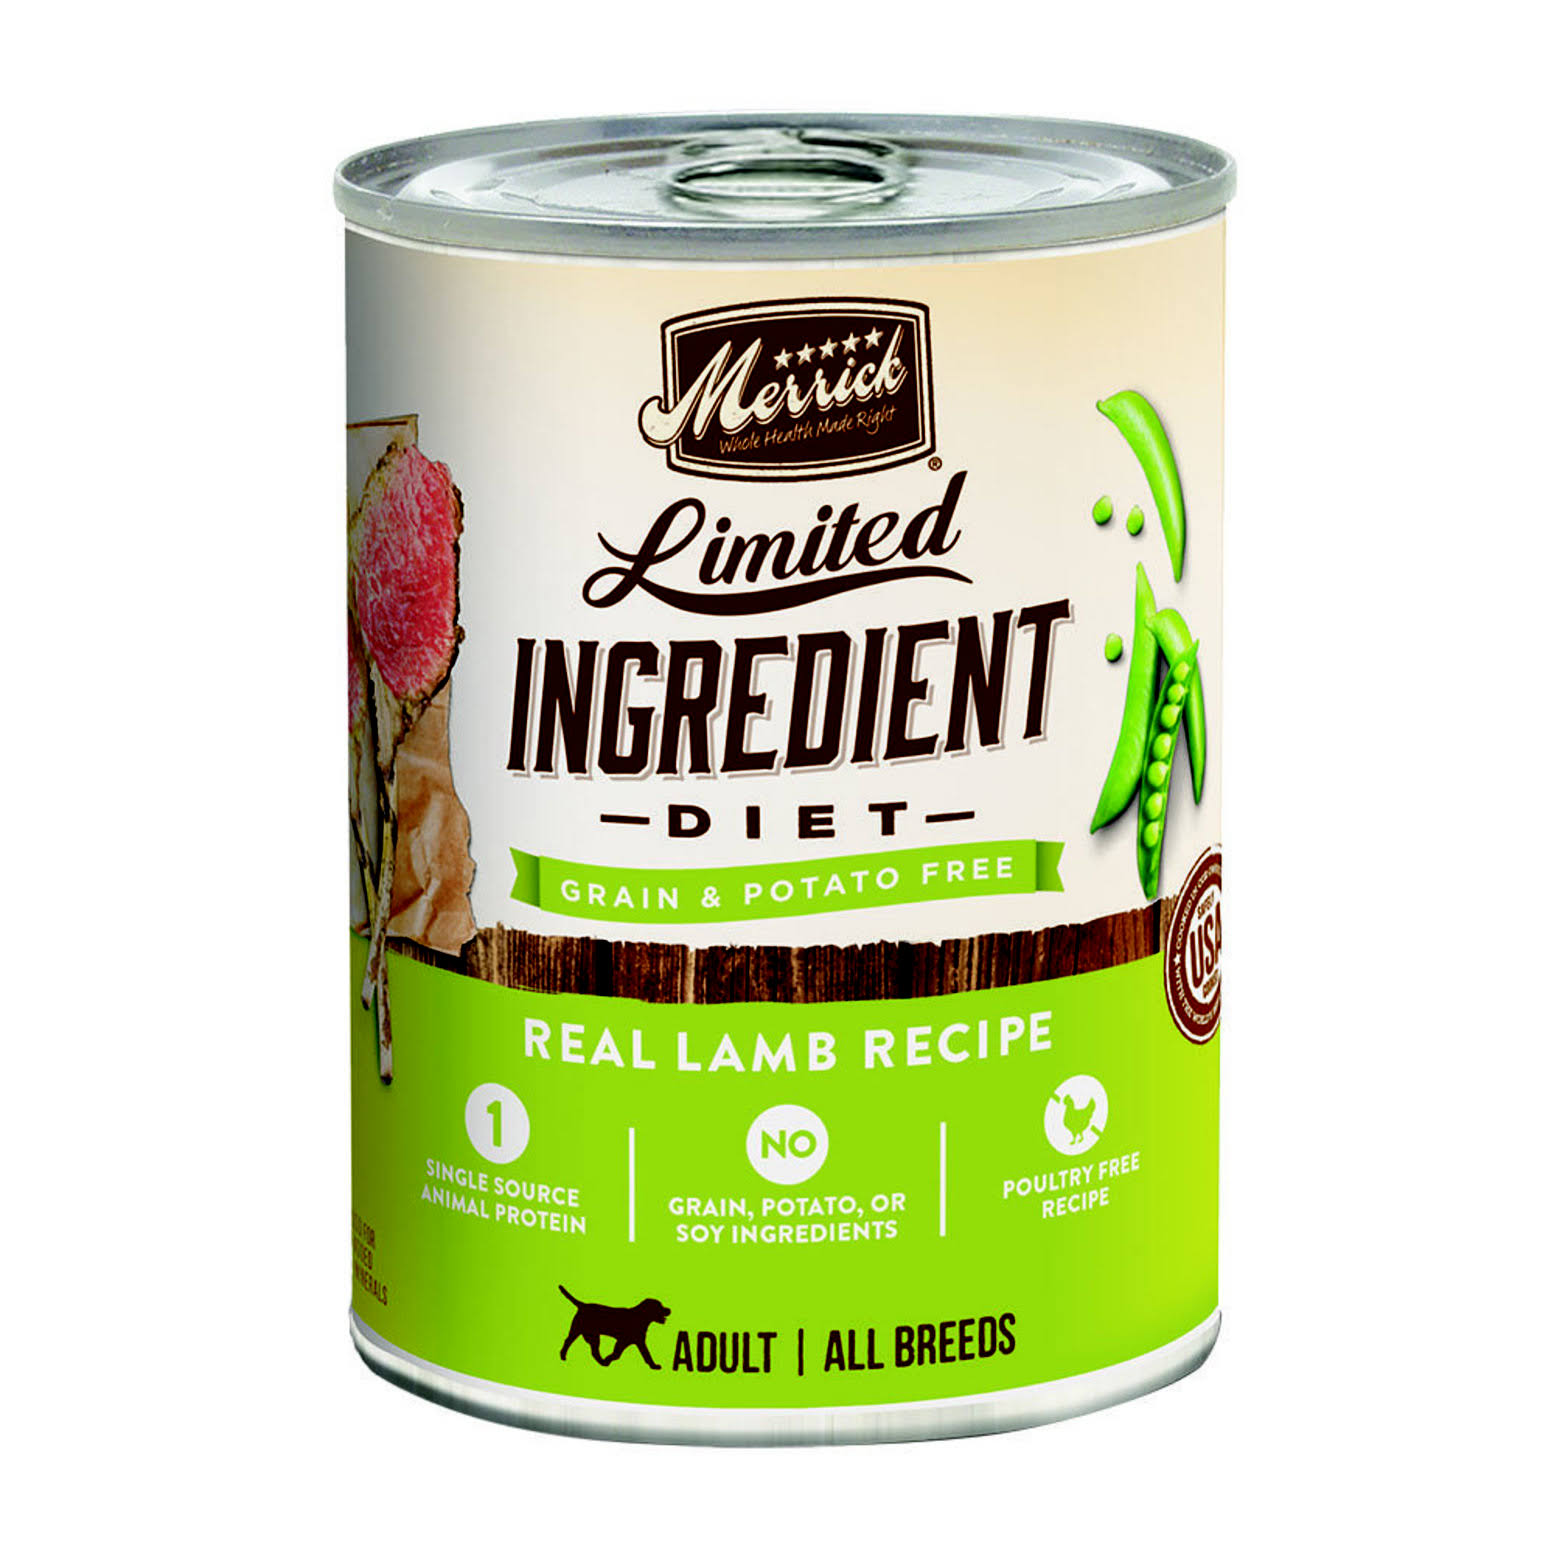 Merrick Limited Ingredient Diet Real Lamb Recipe Pet Food - 12.7 Oz